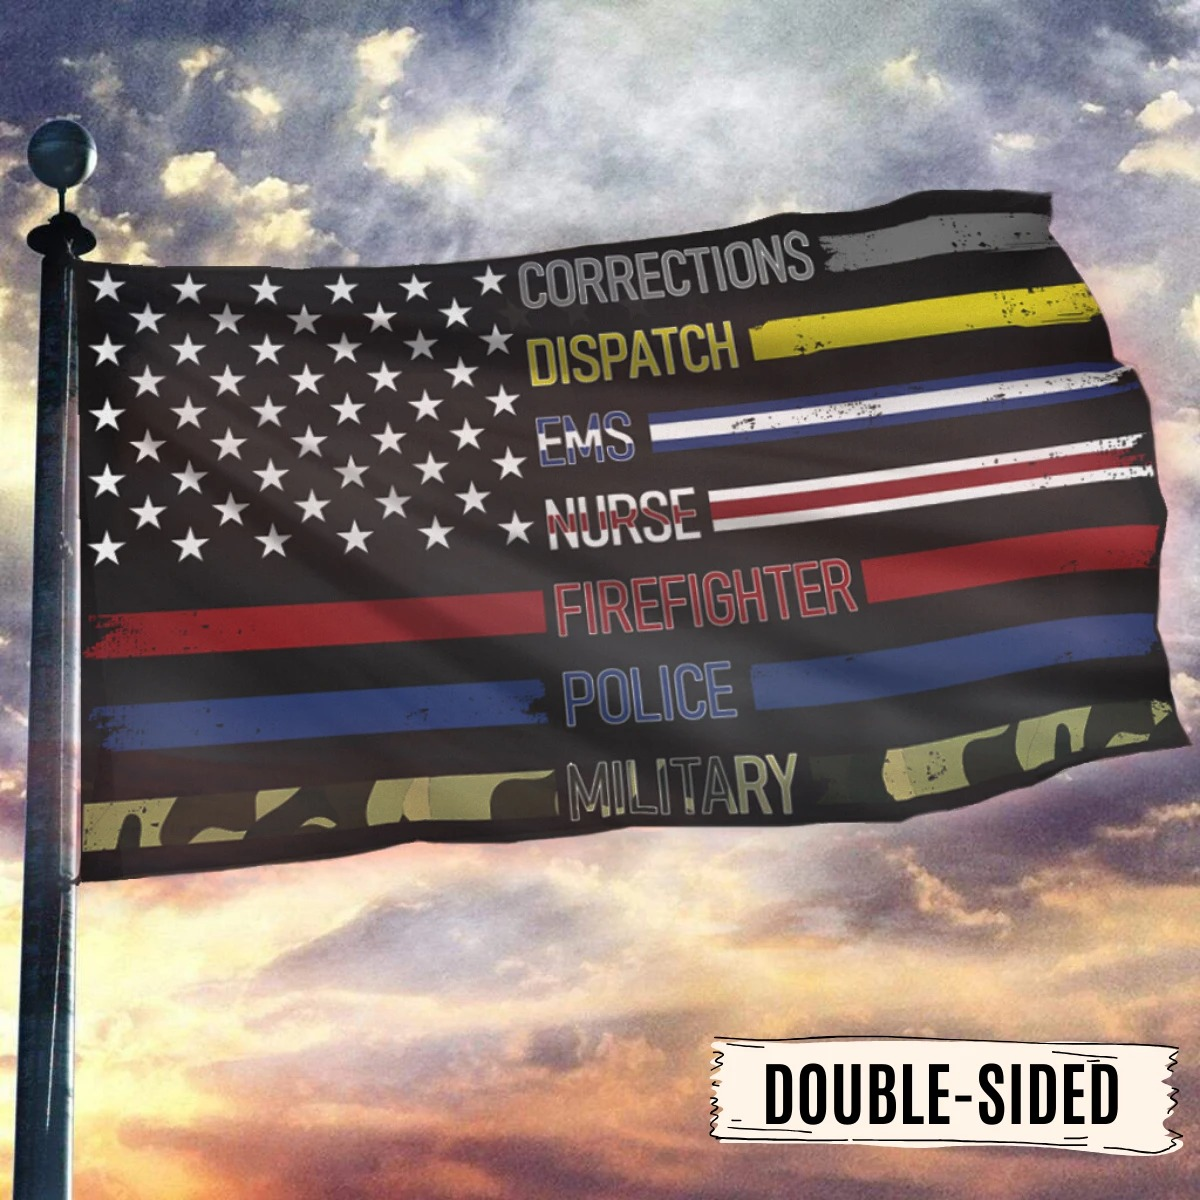 Corrections dispatch ems nurse firefighter police military flag 9